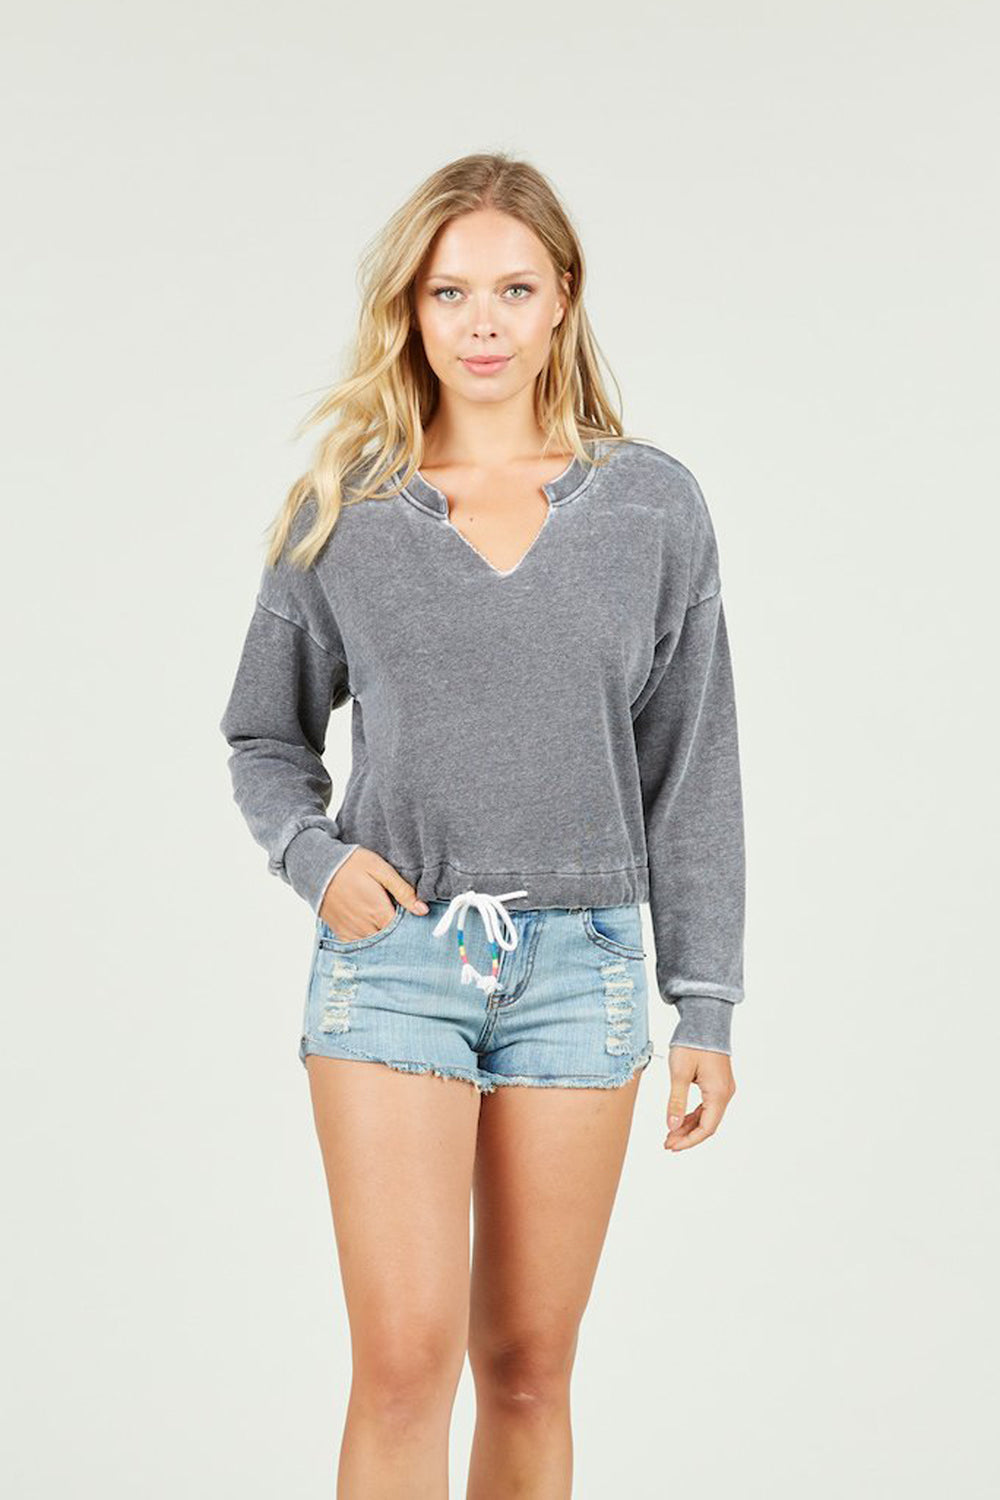 Ocean Drive x Surf Gypsy - Burnout Tie Bottom Crewneck